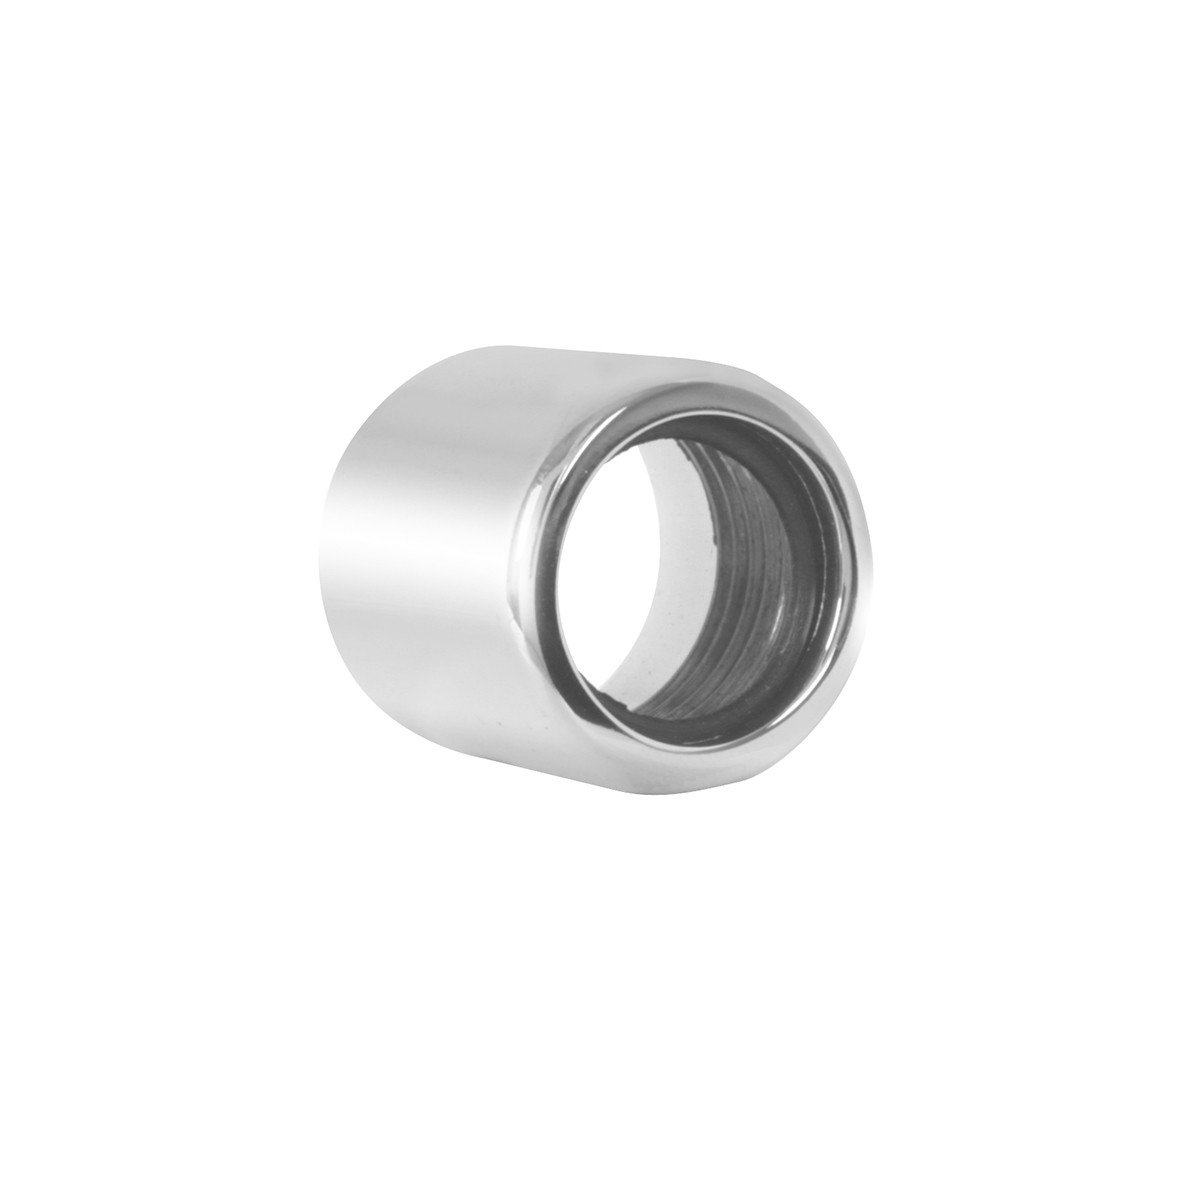 #94130 Chrome Plated Steel Cap Only